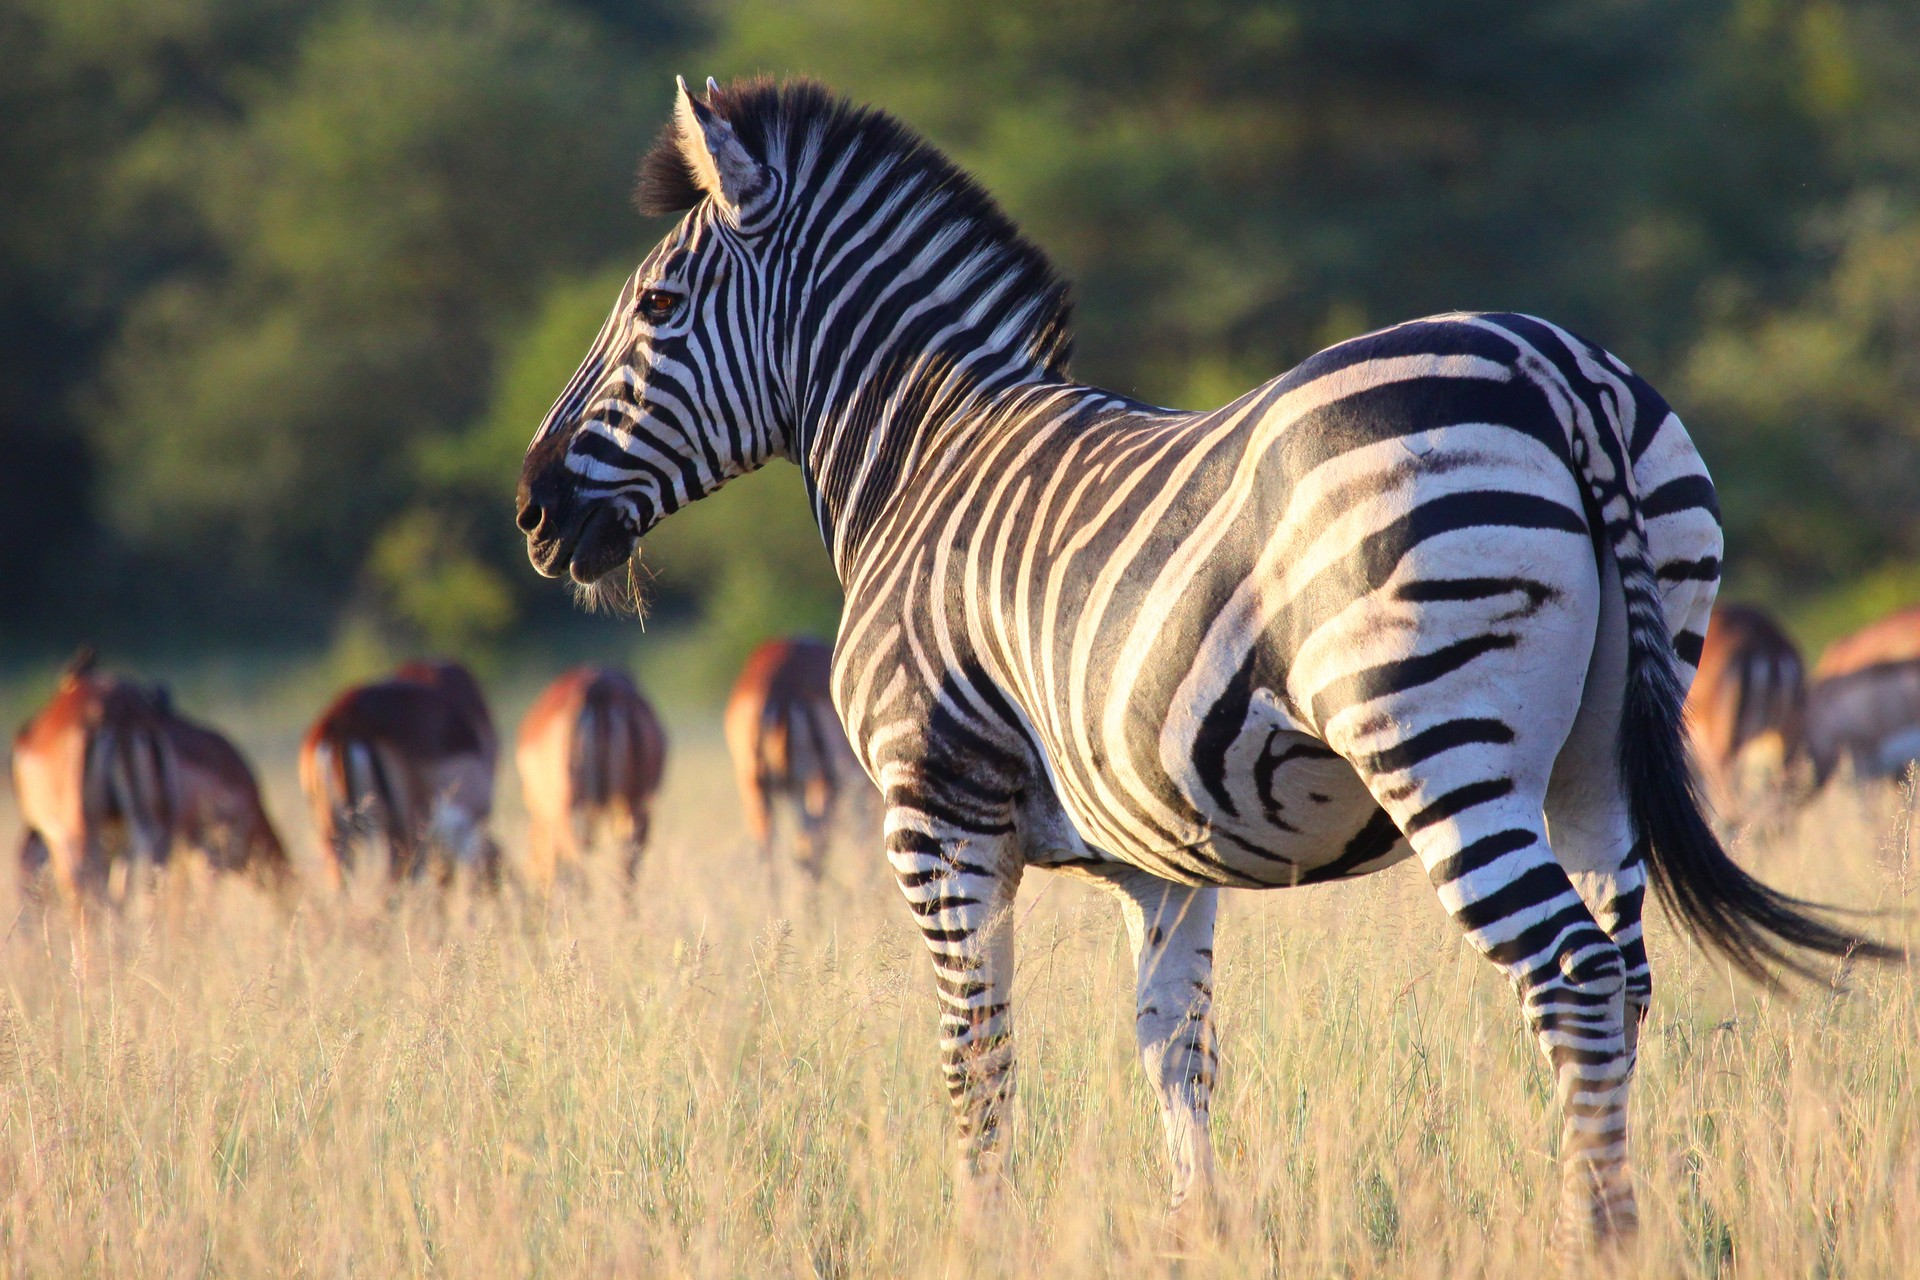 A zebra survey its surroundings in a wildlife reserve